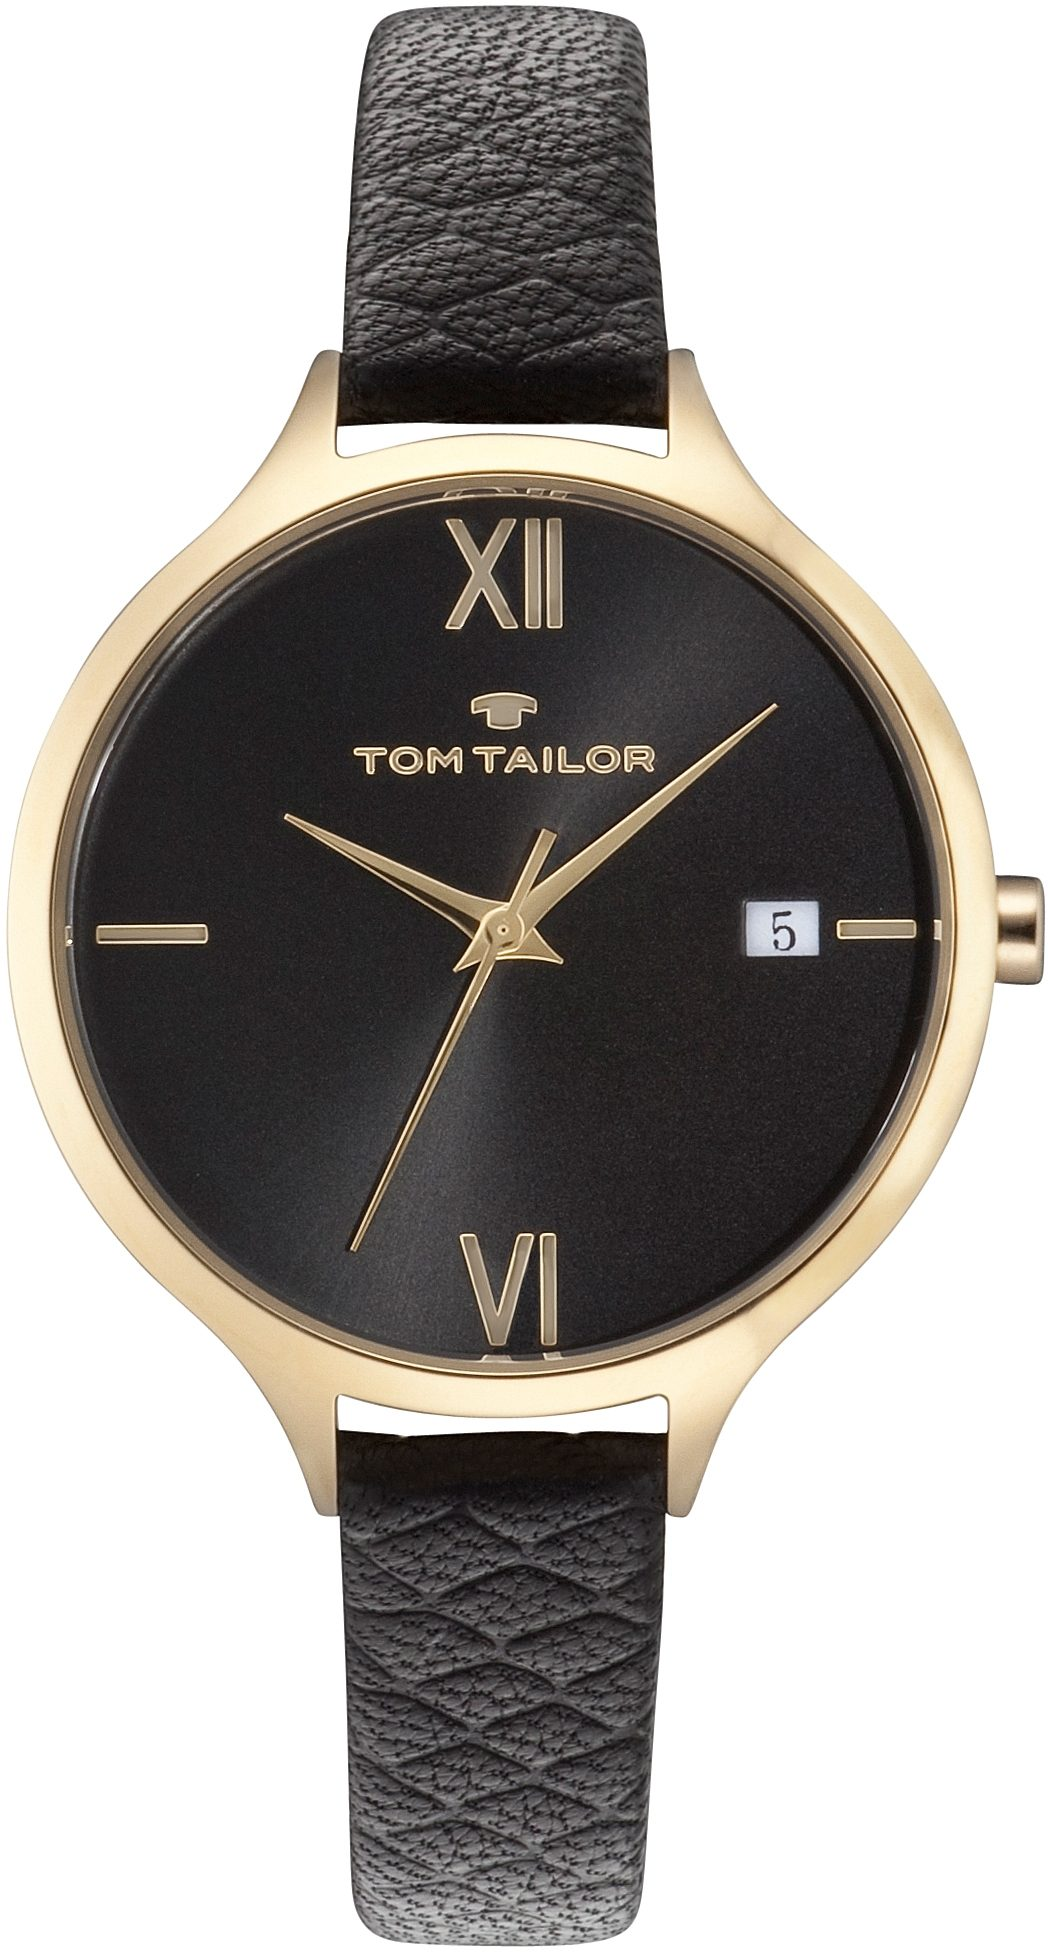 Tom Tailor Armbanduhr, »5416001«